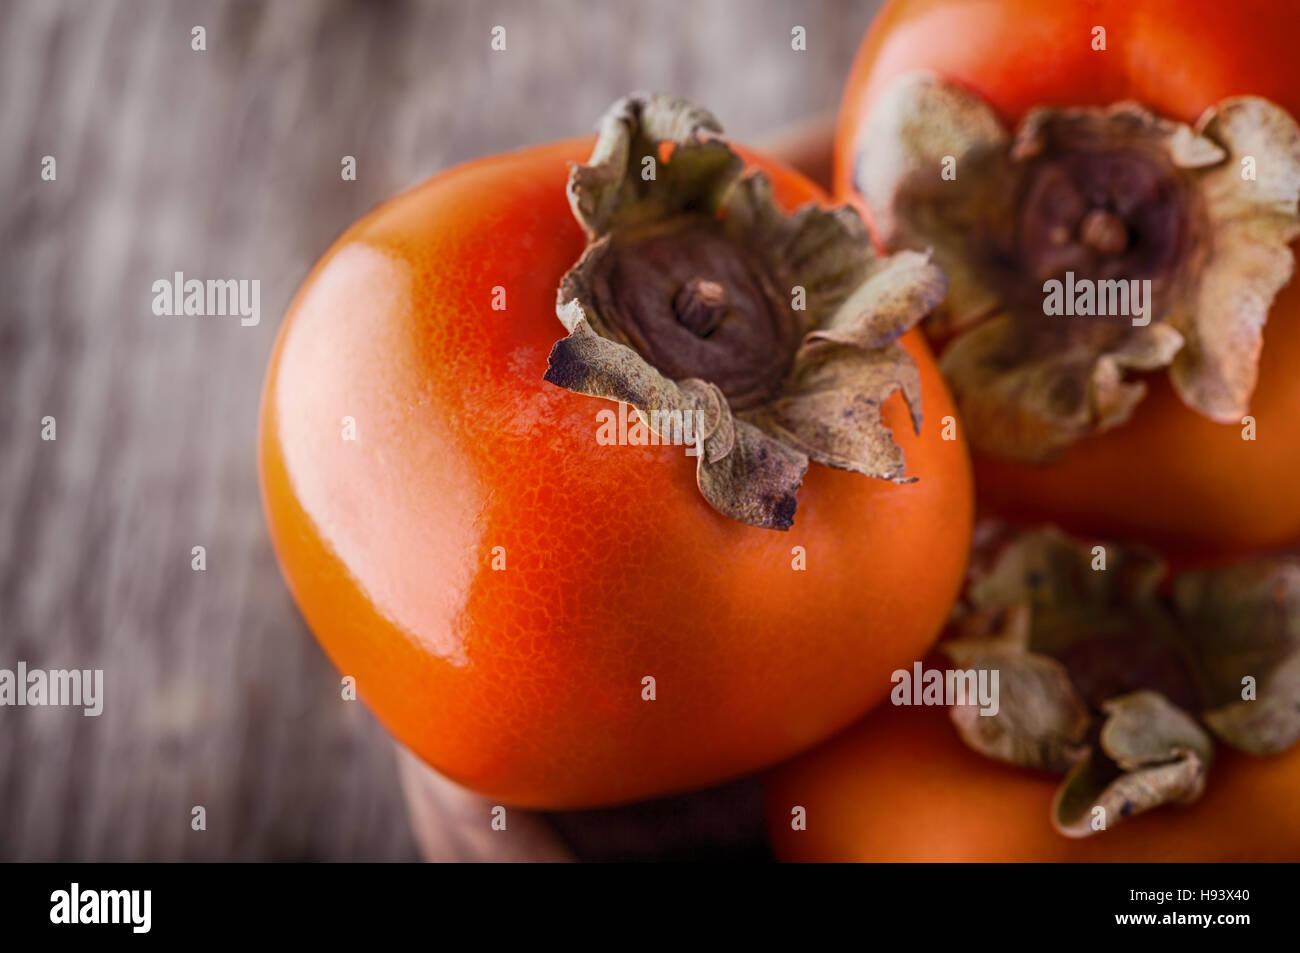 Fresh orange Persimmons on a wooden table. - Stock Image